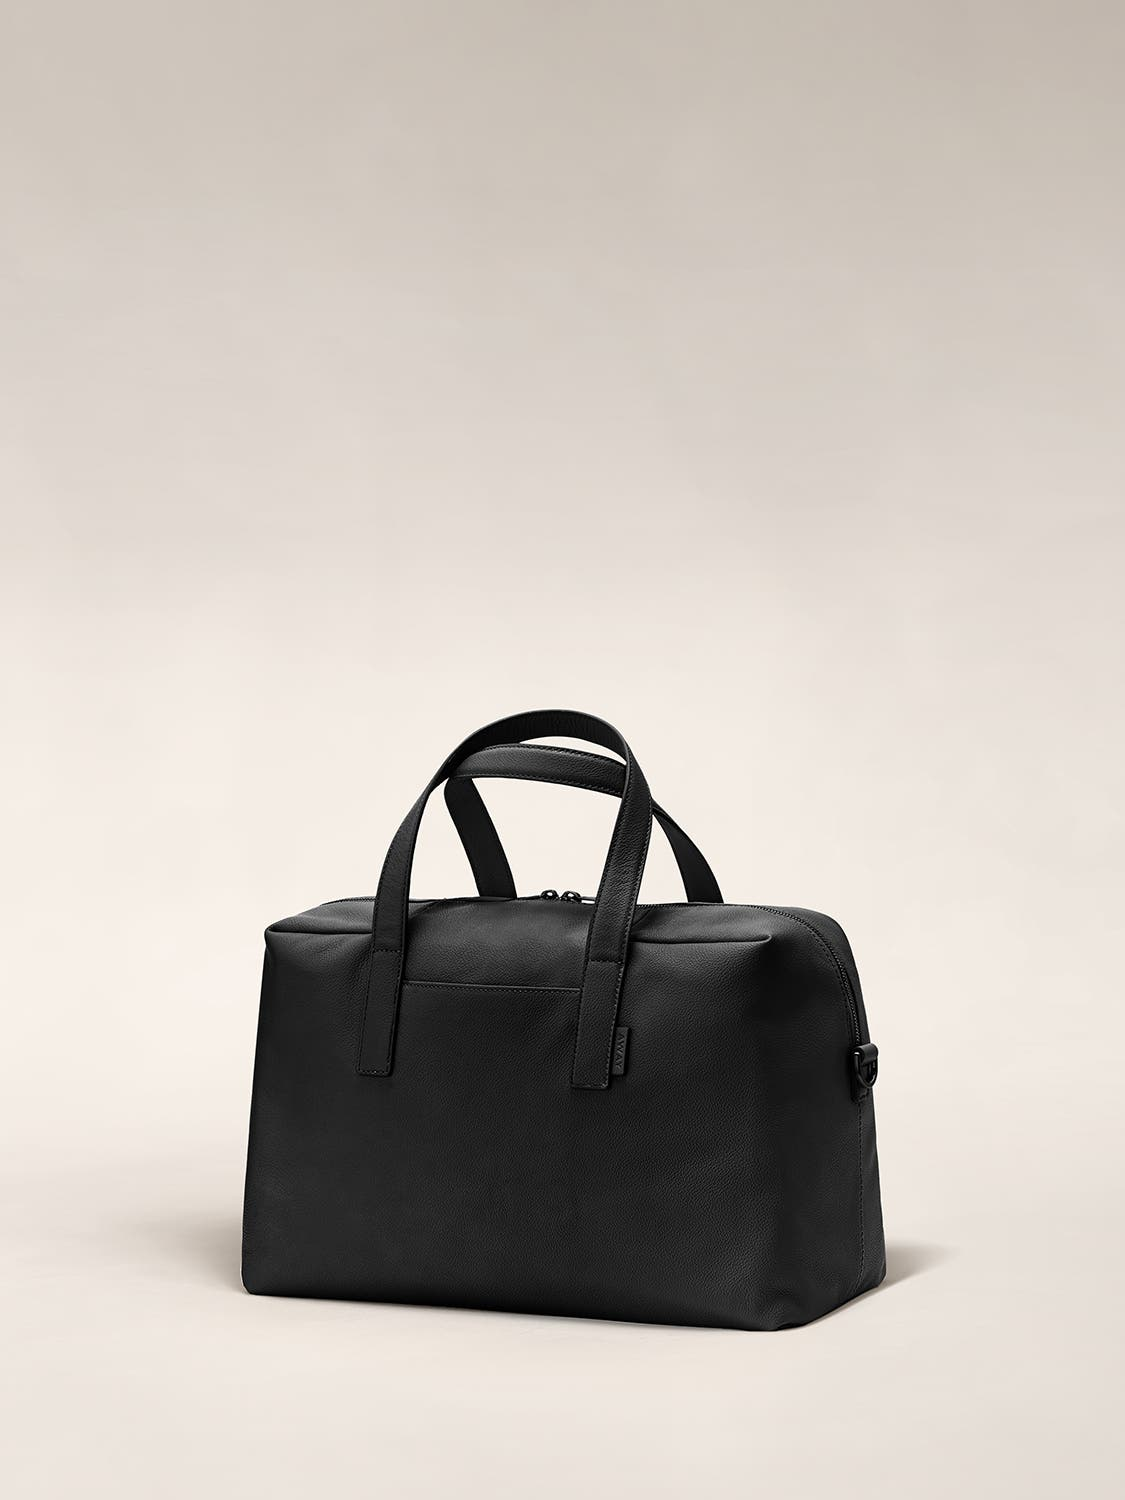 Angled view of a black duffle bag with crossed straps.